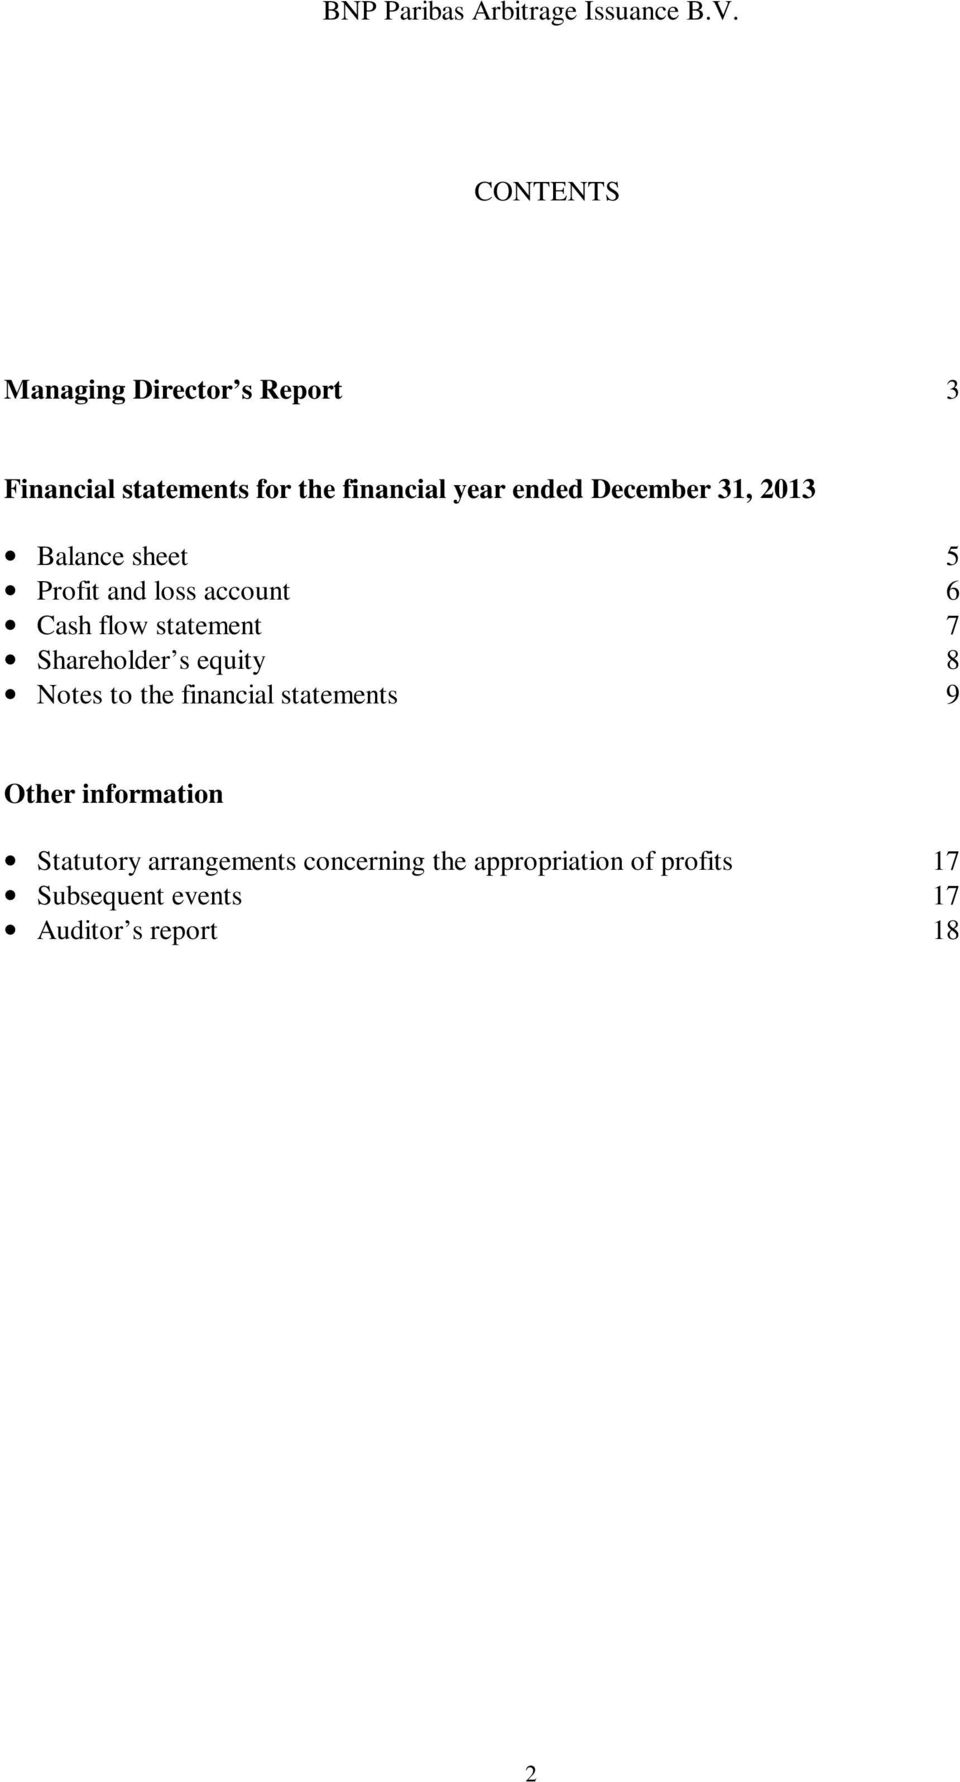 Shareholder s equity 8 Notes to the financial statements 9 Other information Statutory